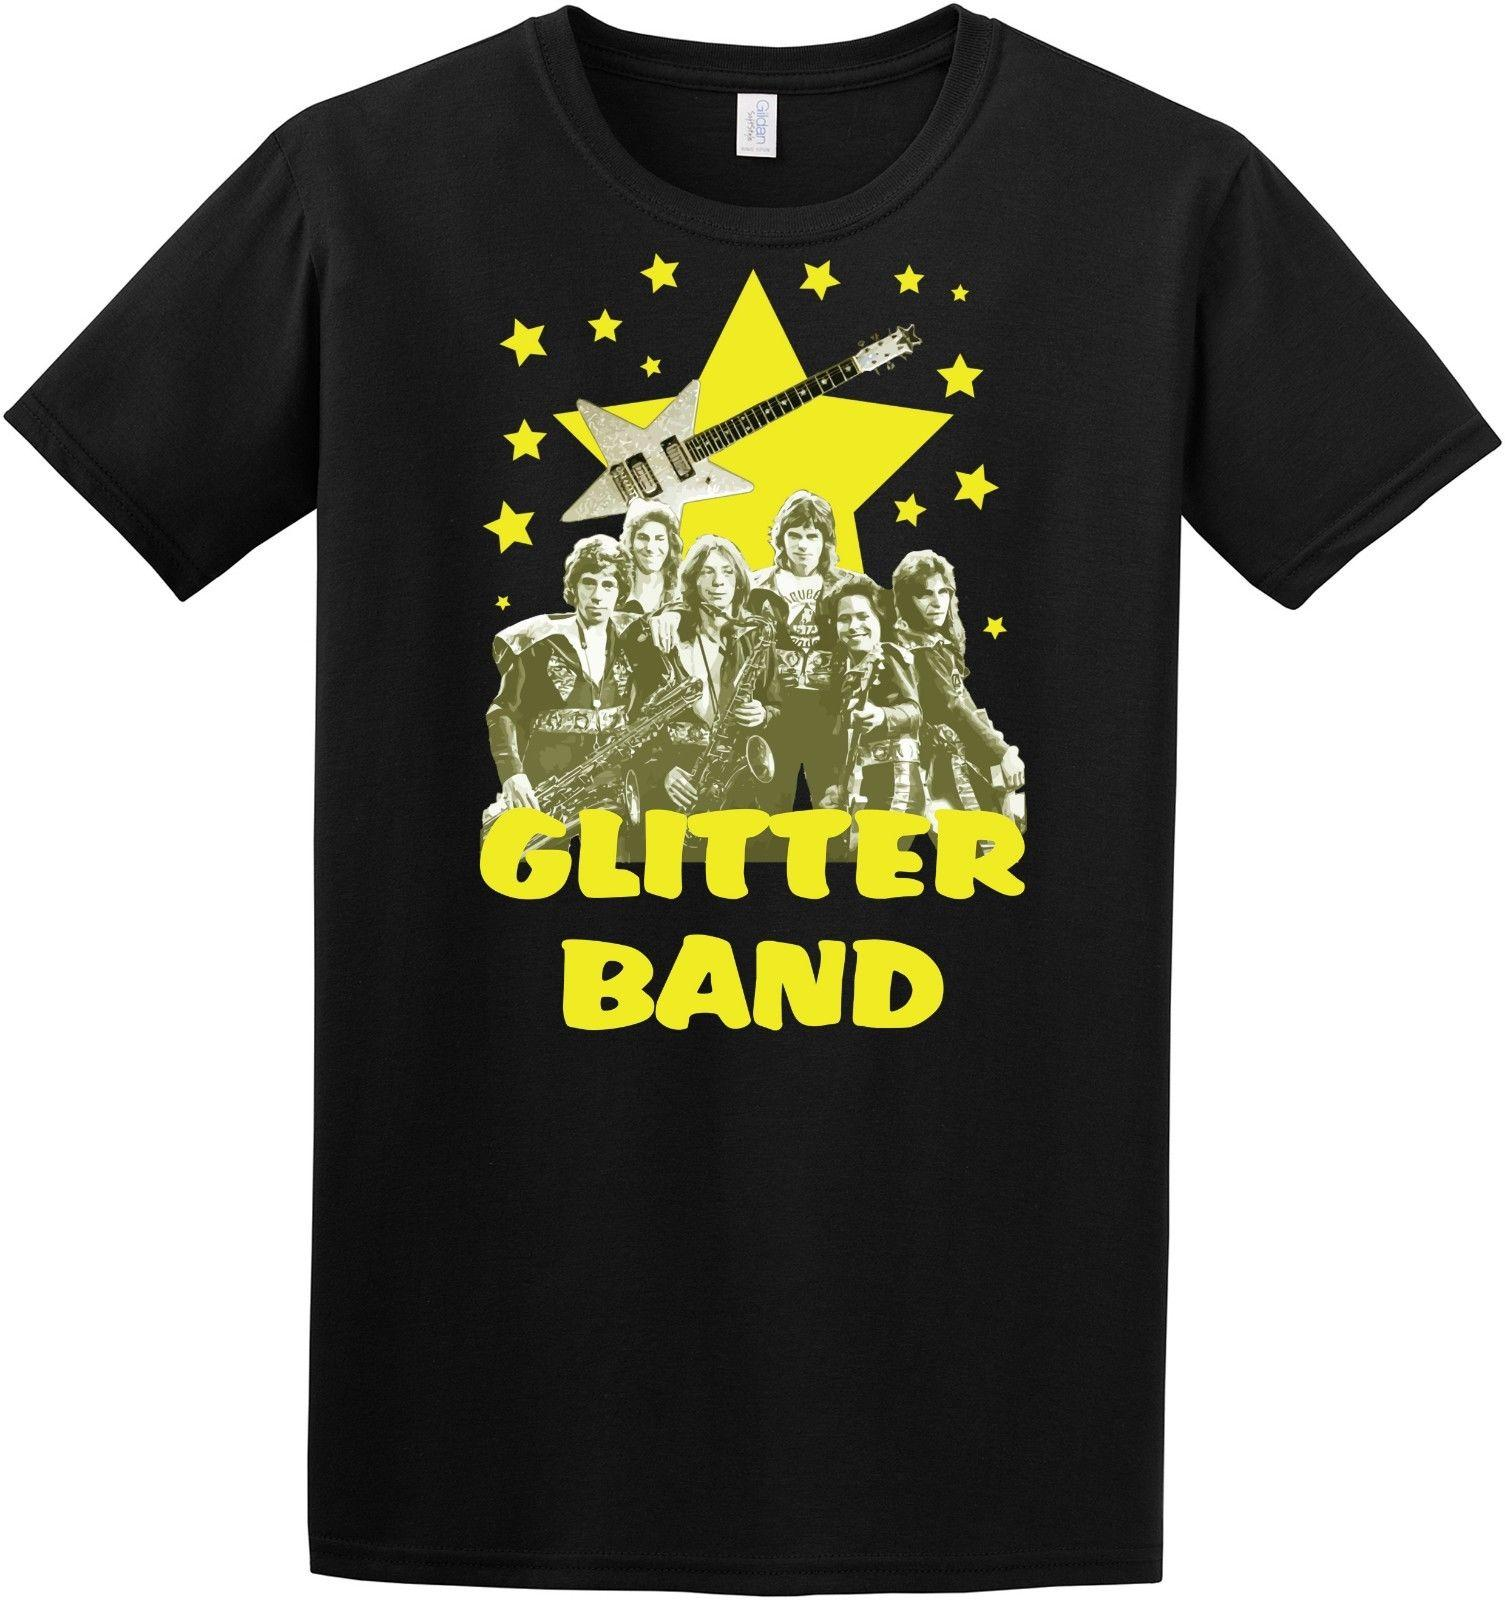 GLITTER BAND BLACK CREW NECK SHORT SLEEVE TSHIRT